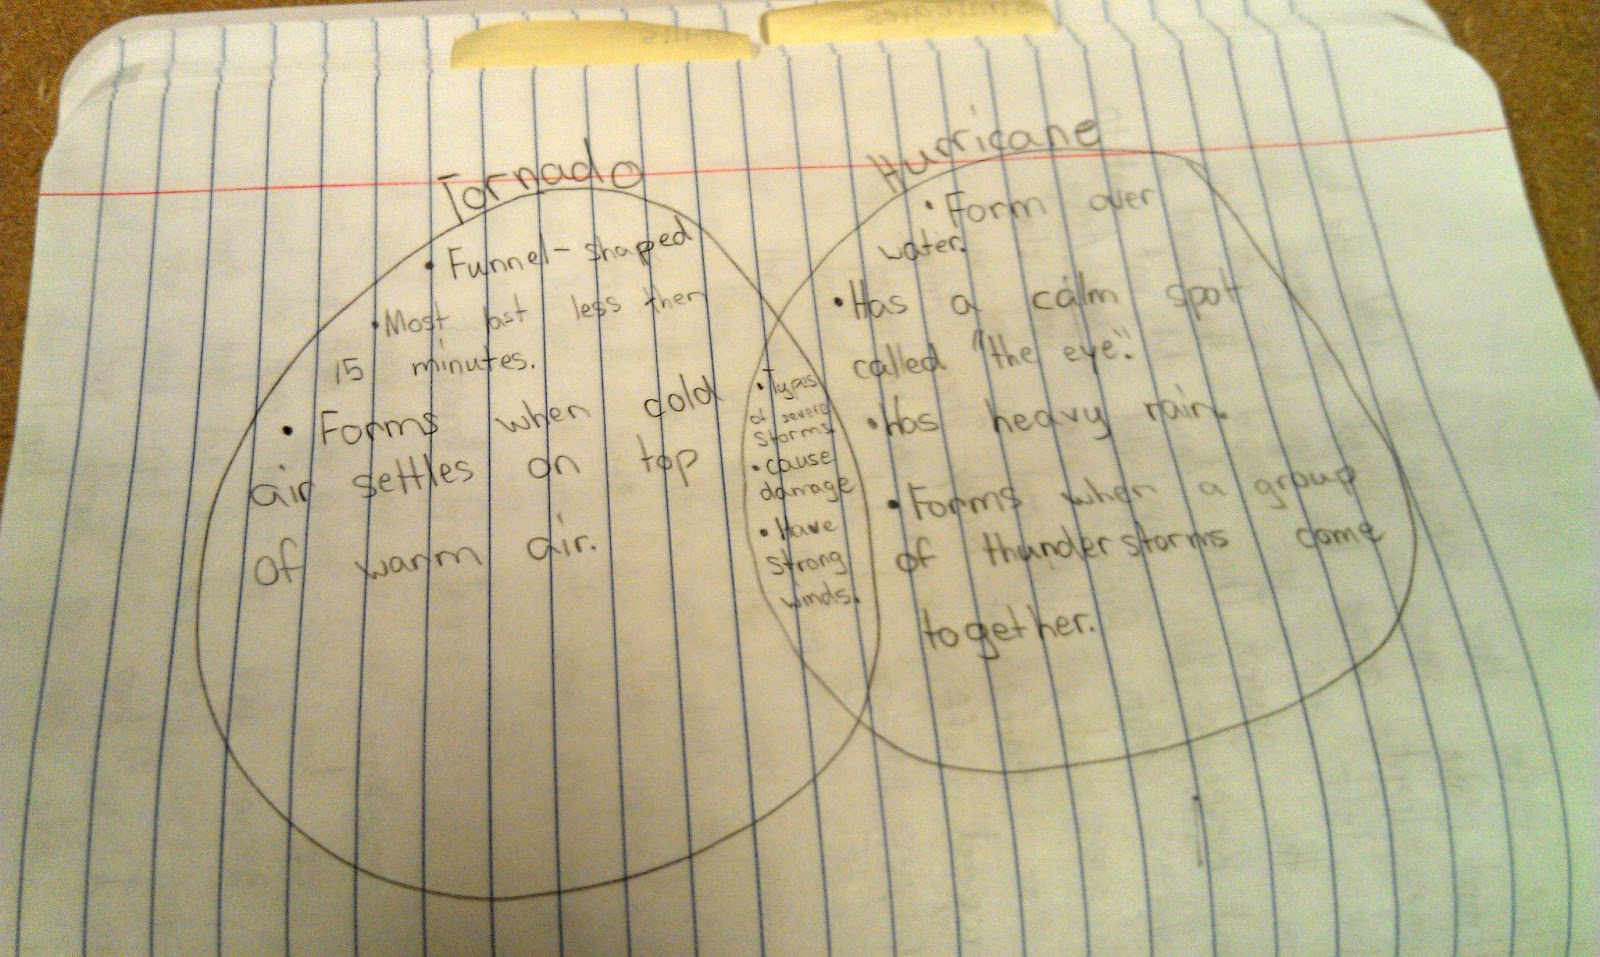 hurricanes and tornadoes together we completed a venn diagram in students readers notebooks